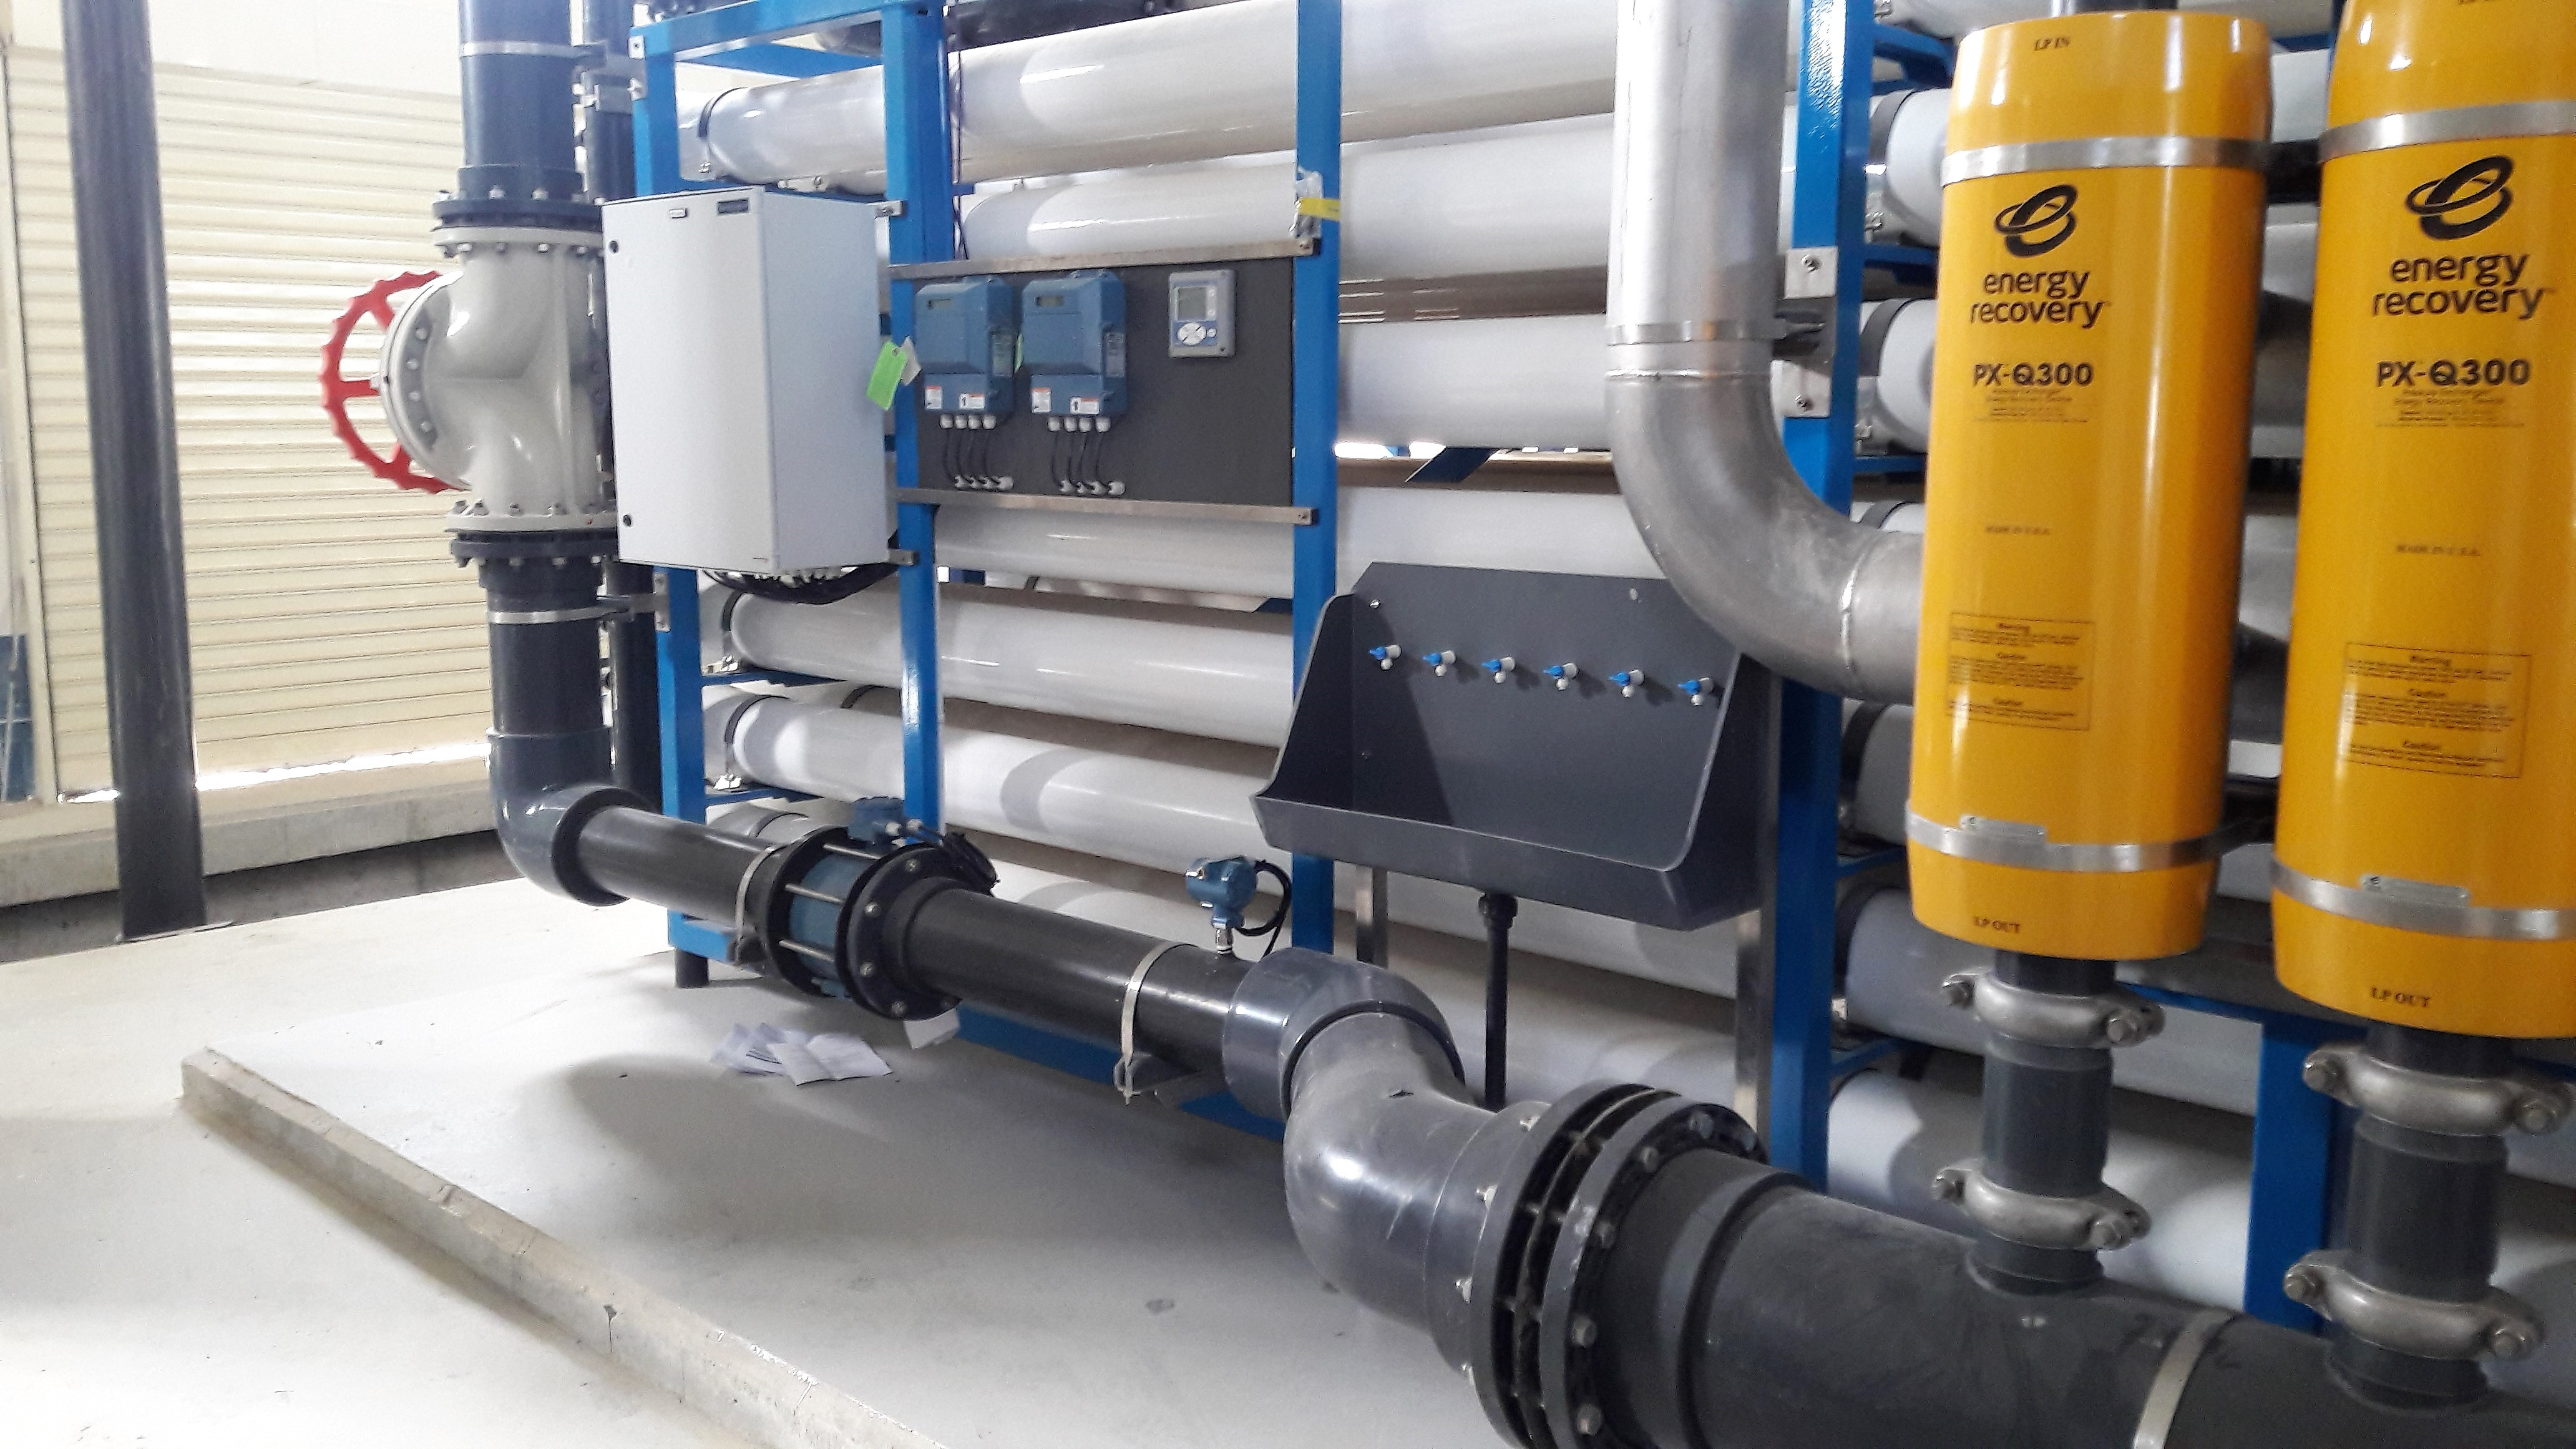 Desalination and Reverse Osmosis plants